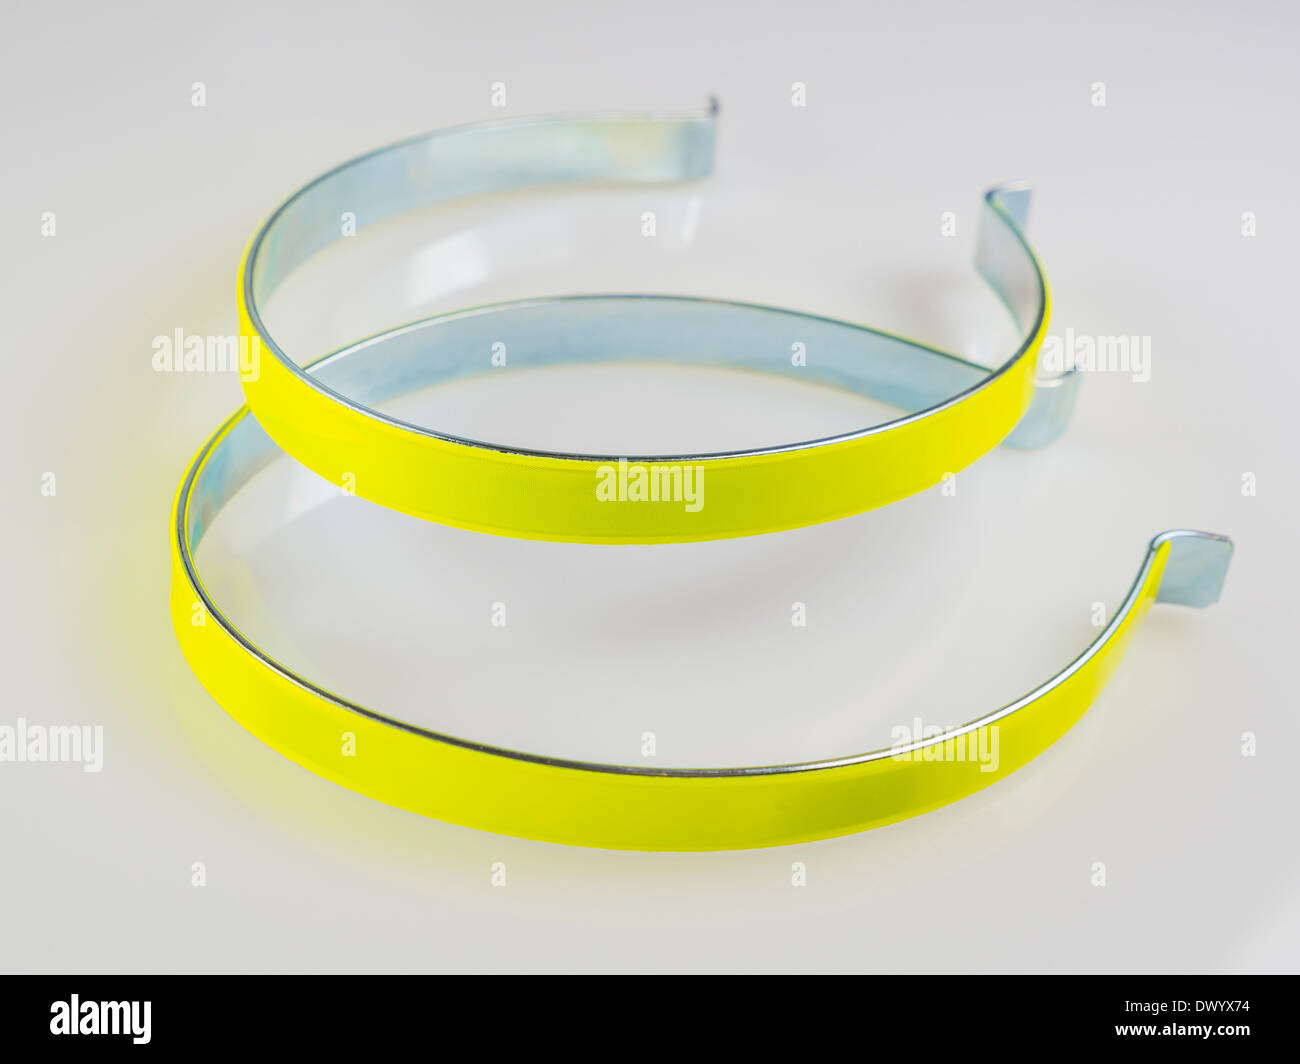 Luminous and reflective yellow bicycle clips for night time safety. - Stock Image